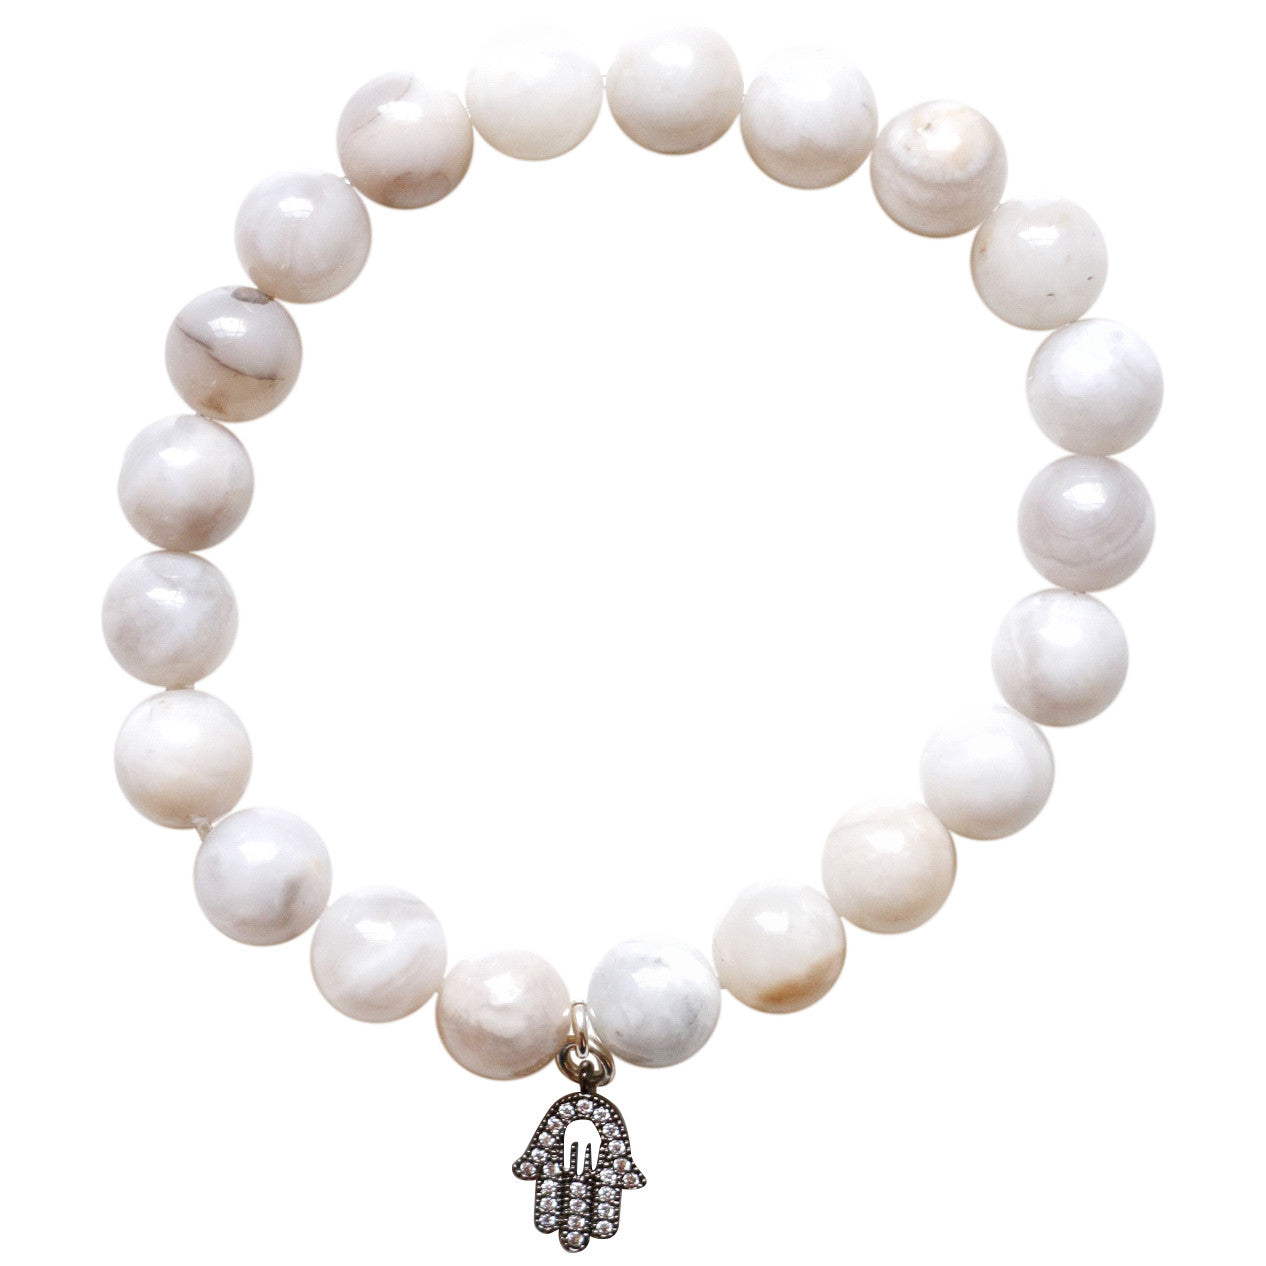 Molly Jane Designs Moonstone Charm Bracelet